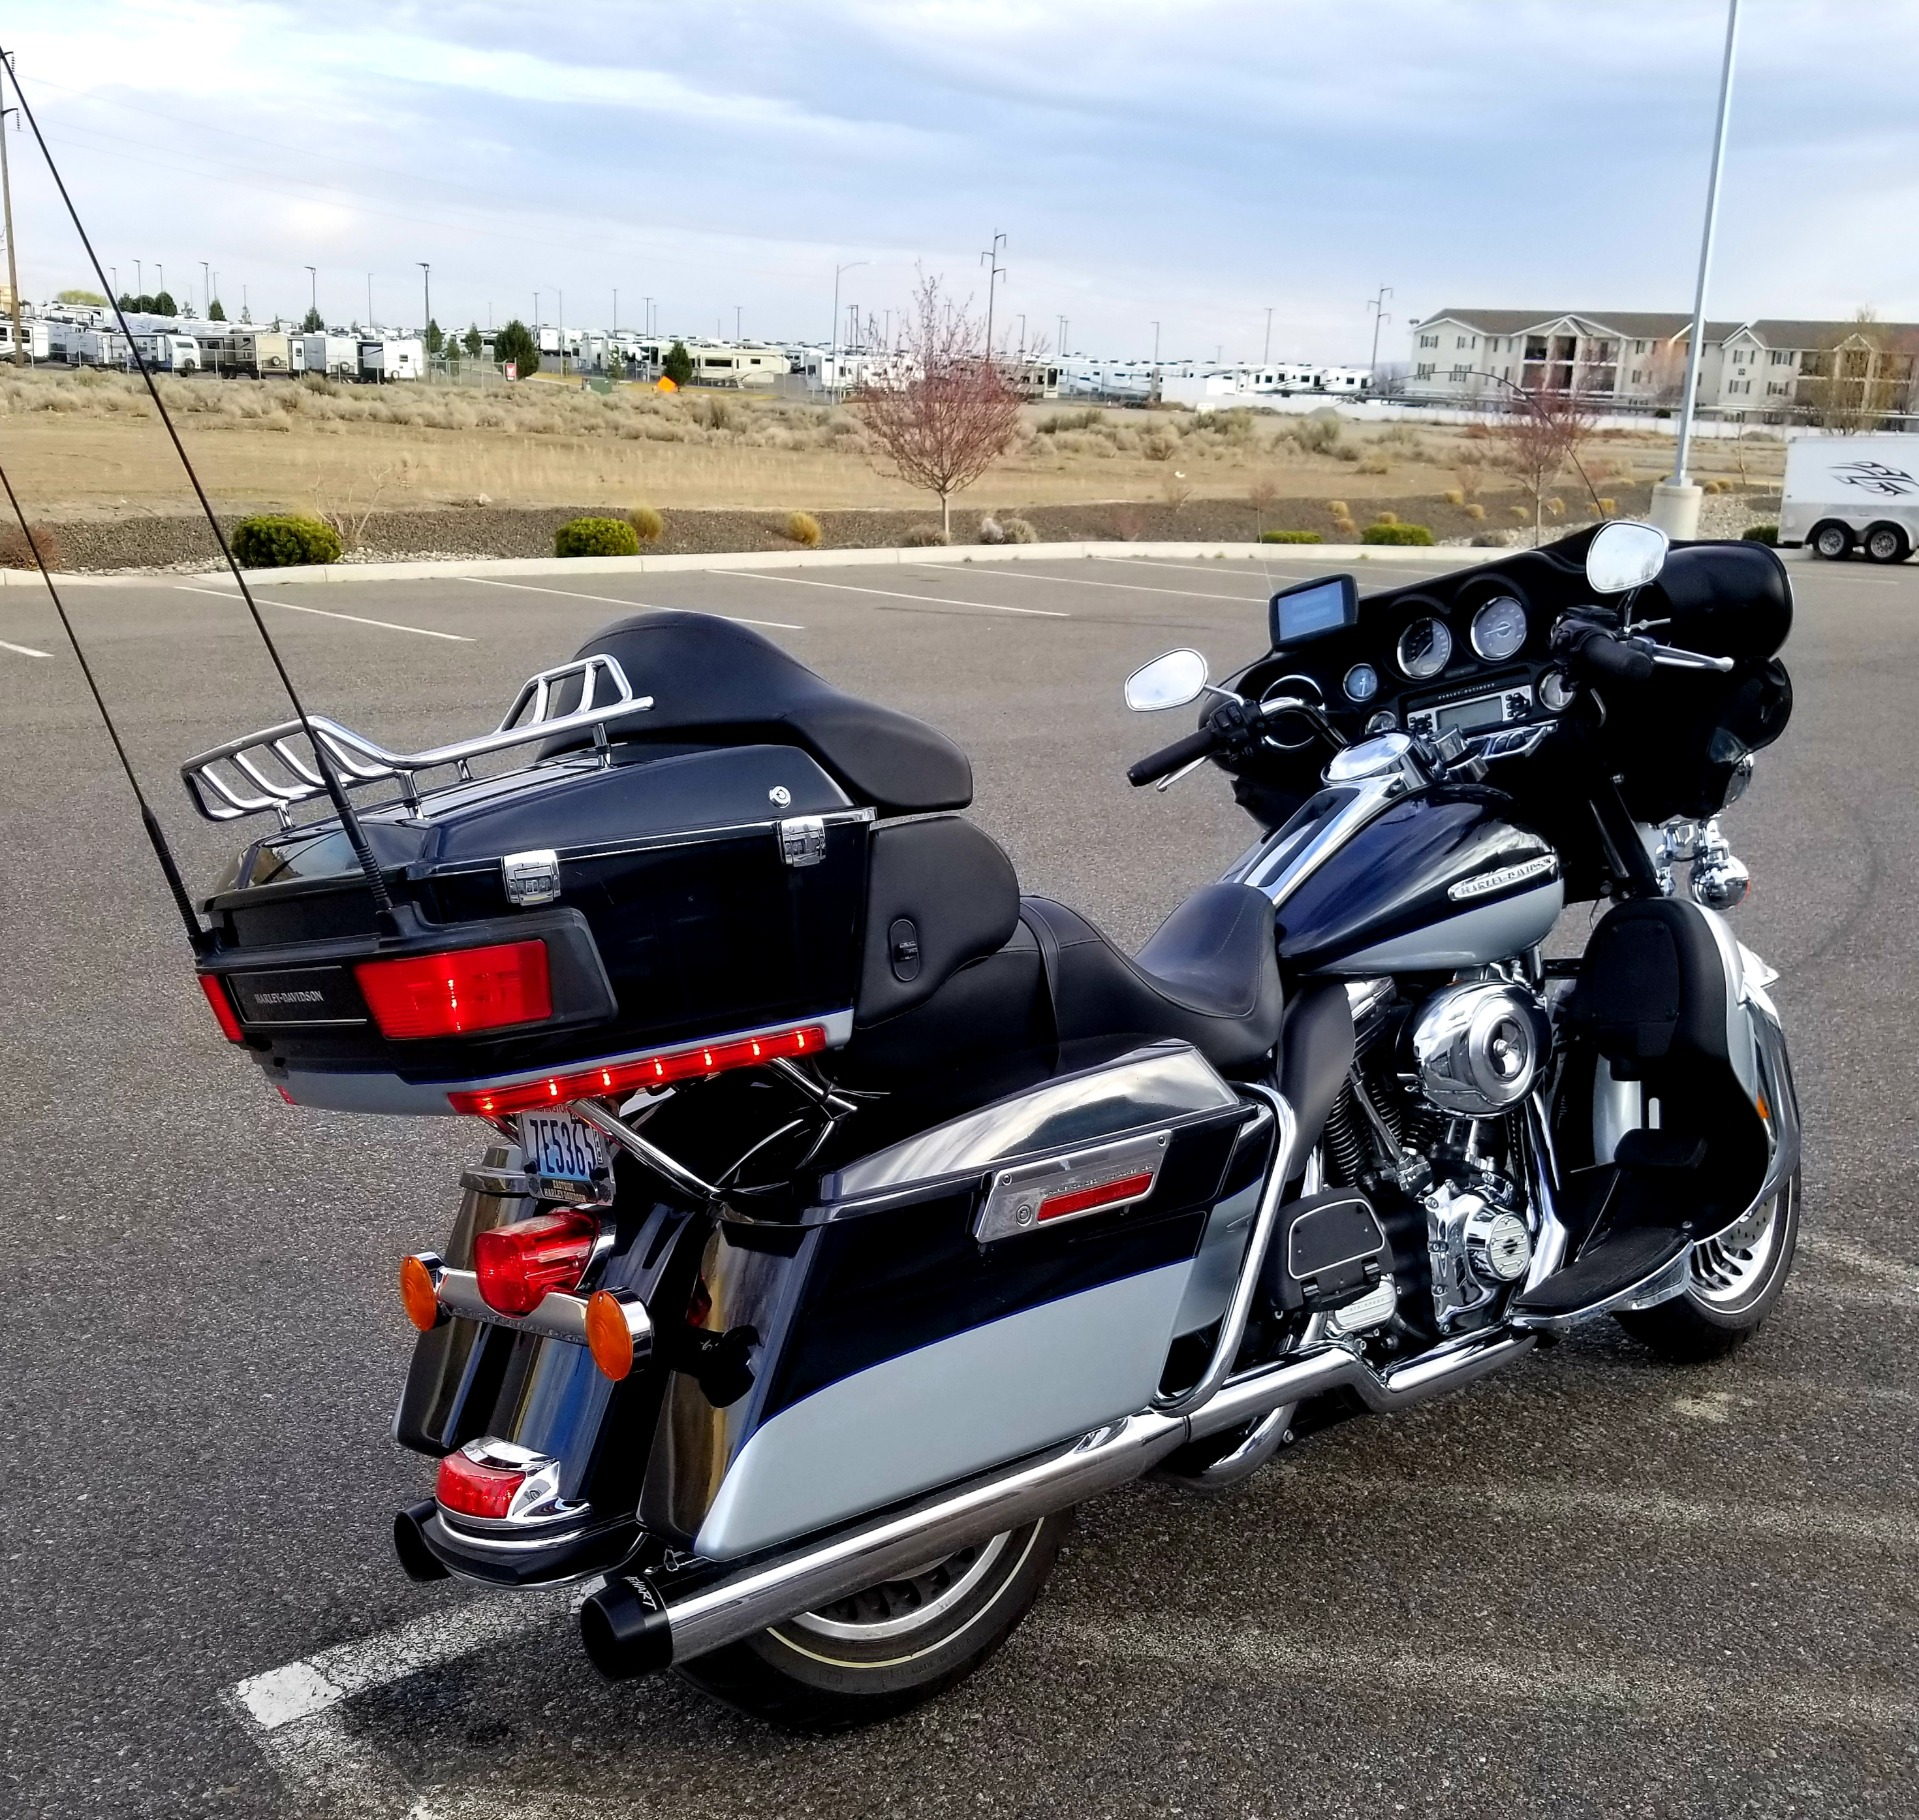 2012 Harley-Davidson Electra Glide® Ultra Limited in Pasco, Washington - Photo 4